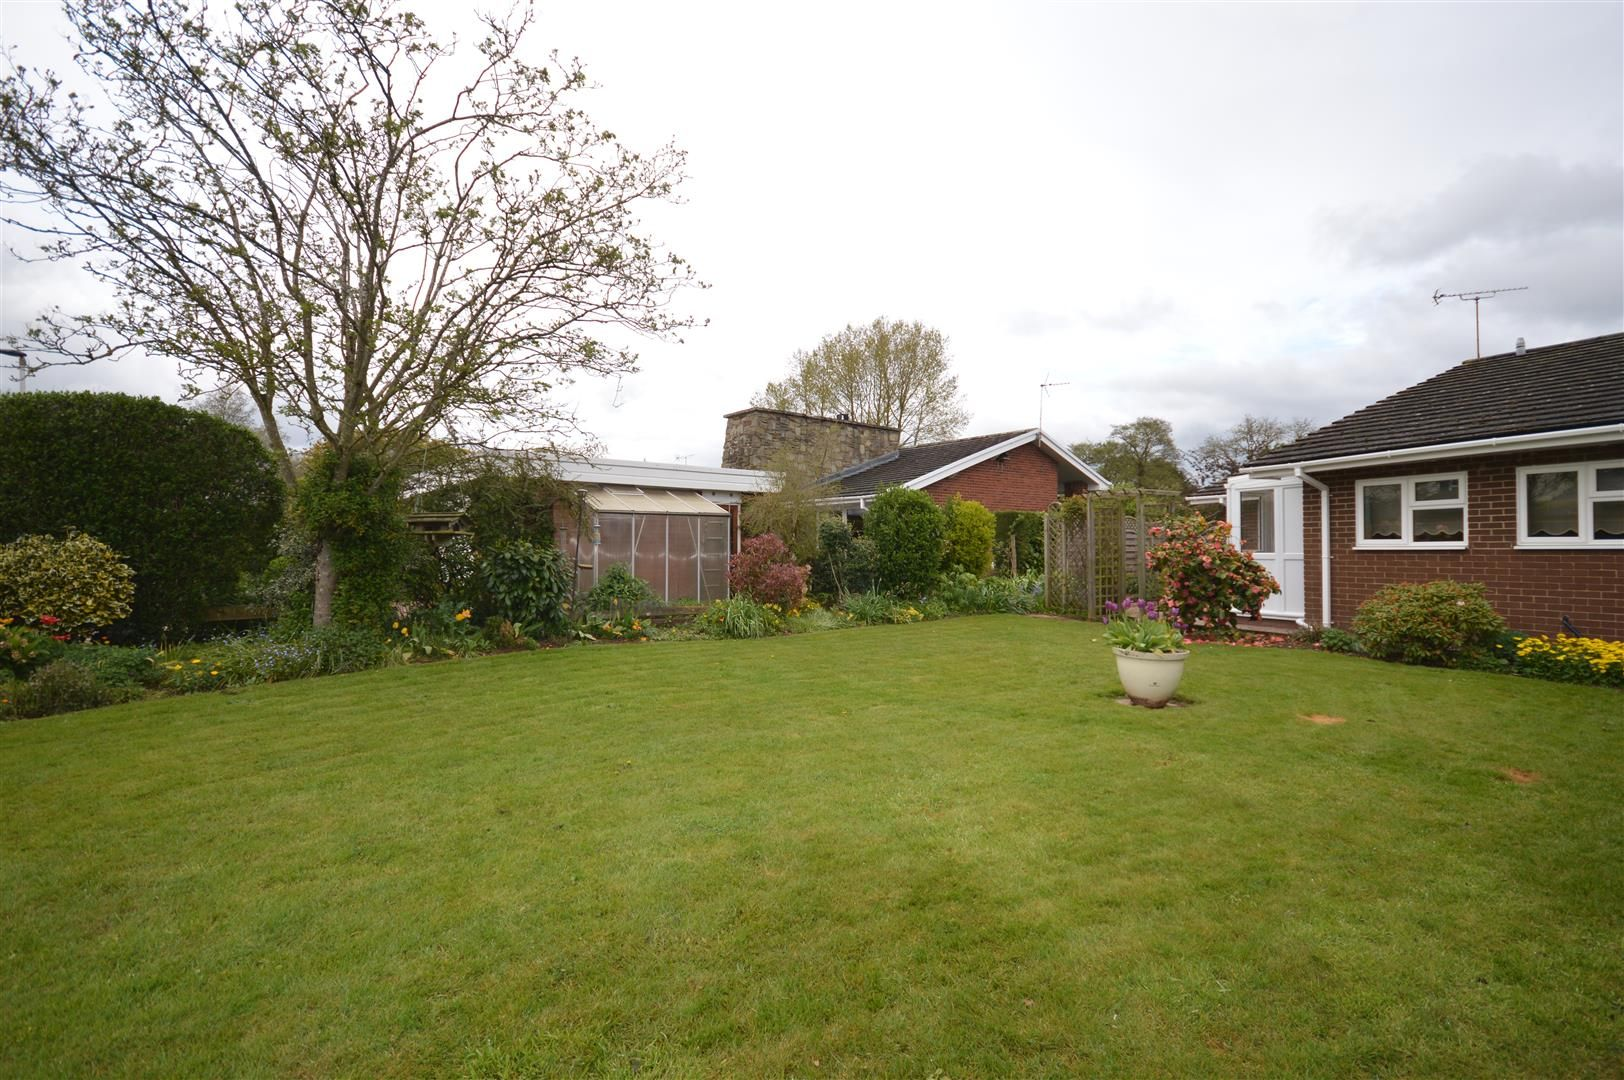 3 bed detached-bungalow for sale in Bodenham 6